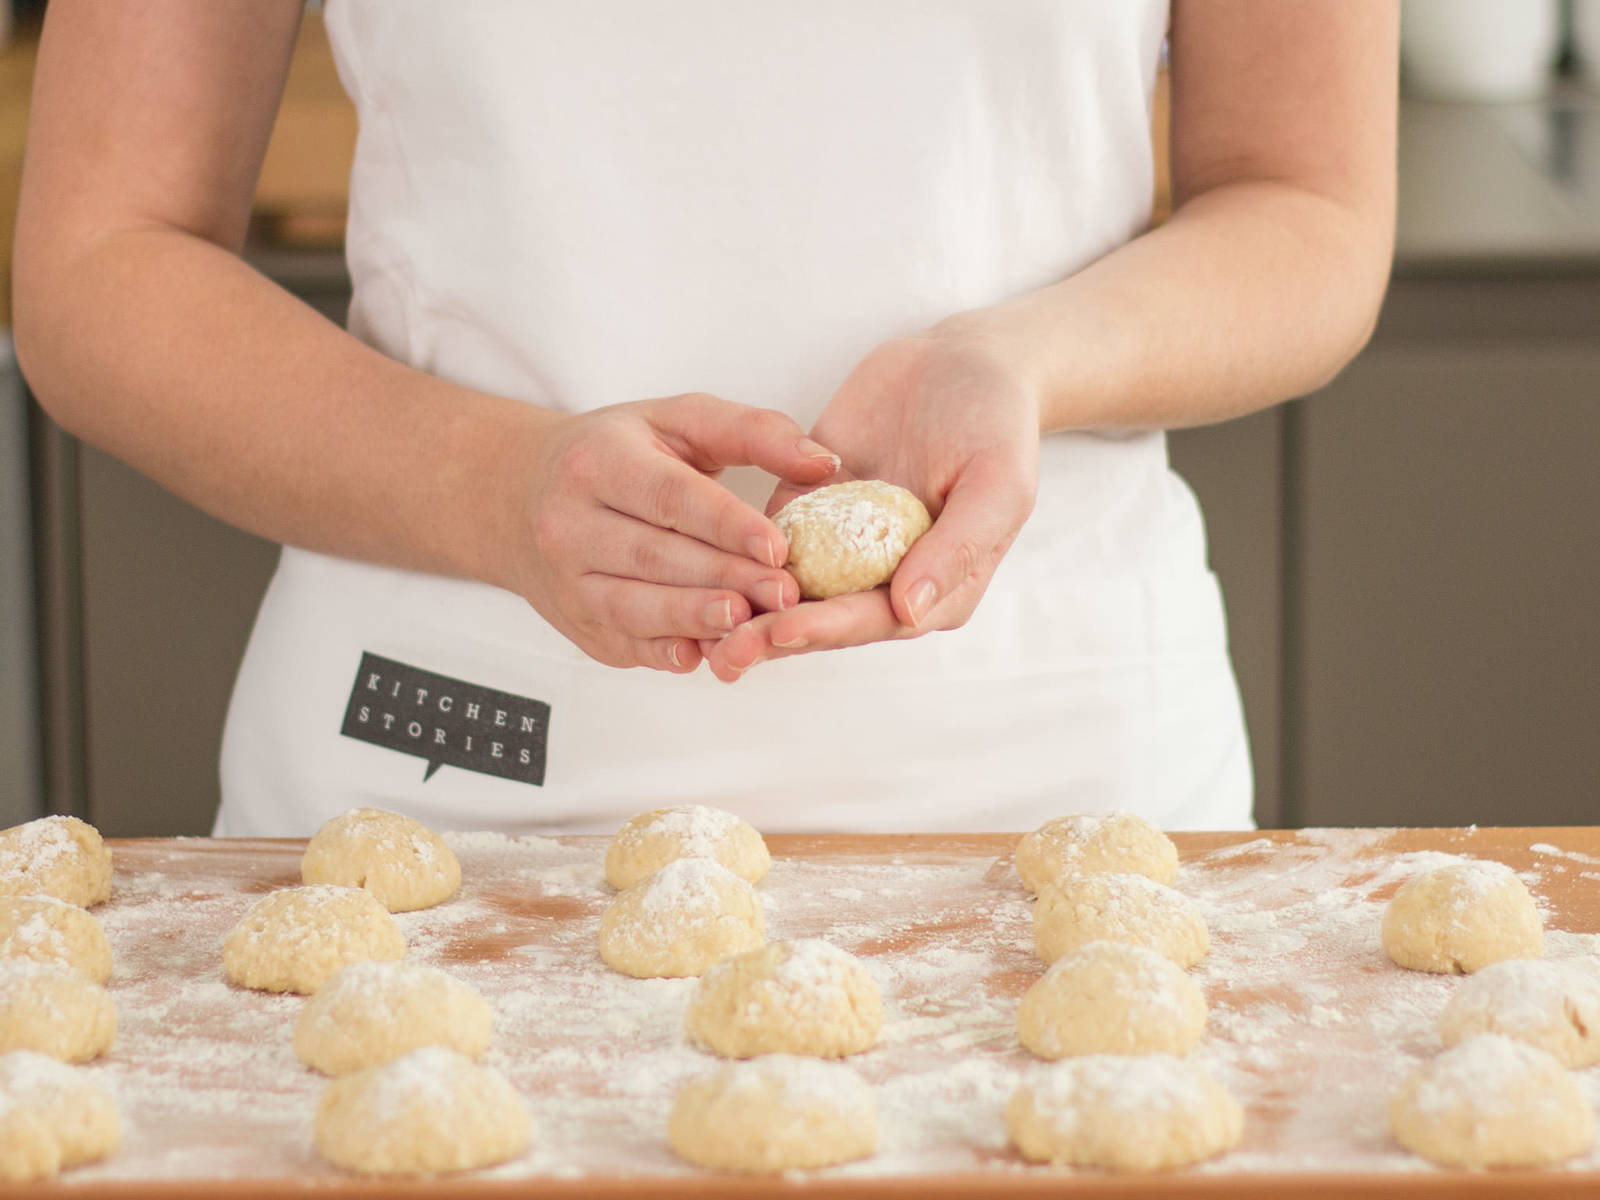 Transfer dough to a floured work surface. Now, form the dough into small, golf ball-sized rounds. Allow to rise for approx. 25 – 30 min. Then, flatten out dough and with a small cookie cutter, cut out the center of the dough. Allow dough to rise for approx. another 50 – 60 min.